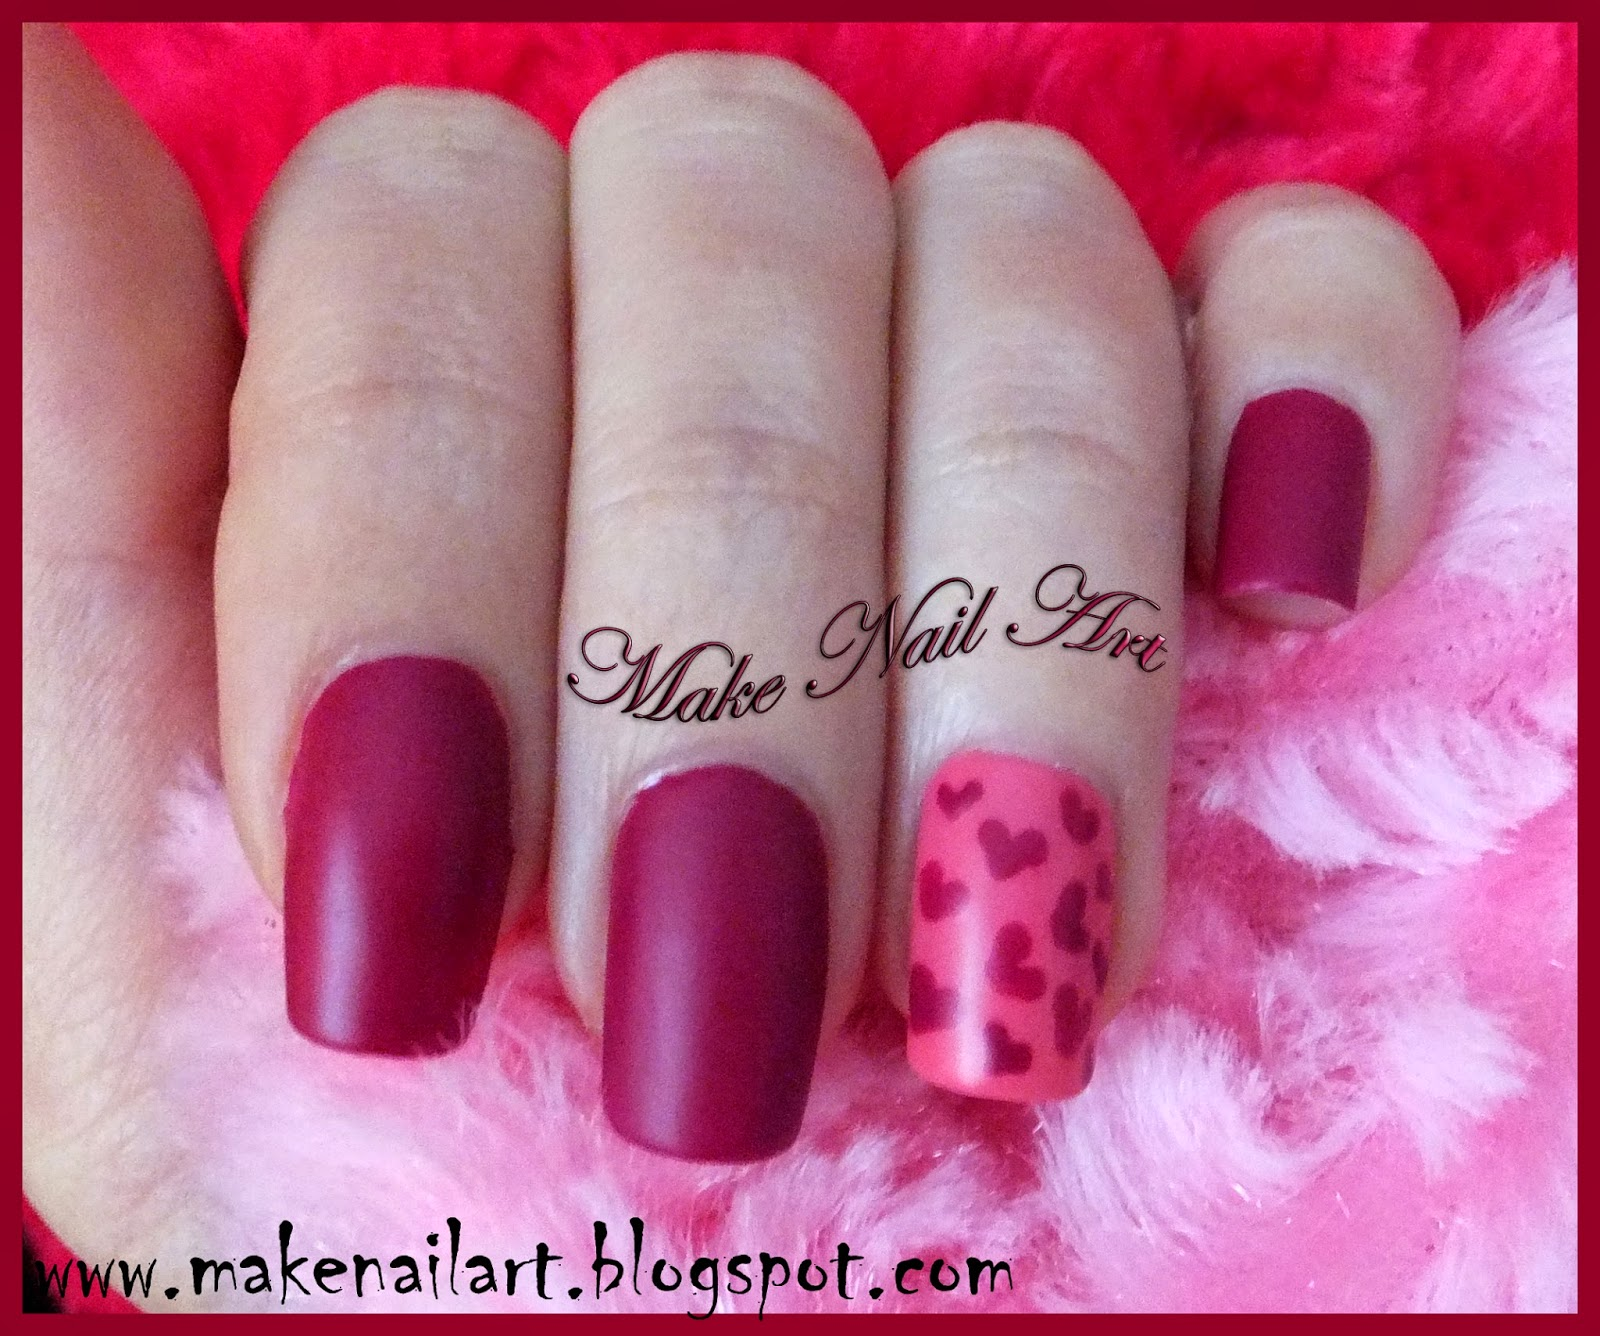 Make Nail Art January 2015